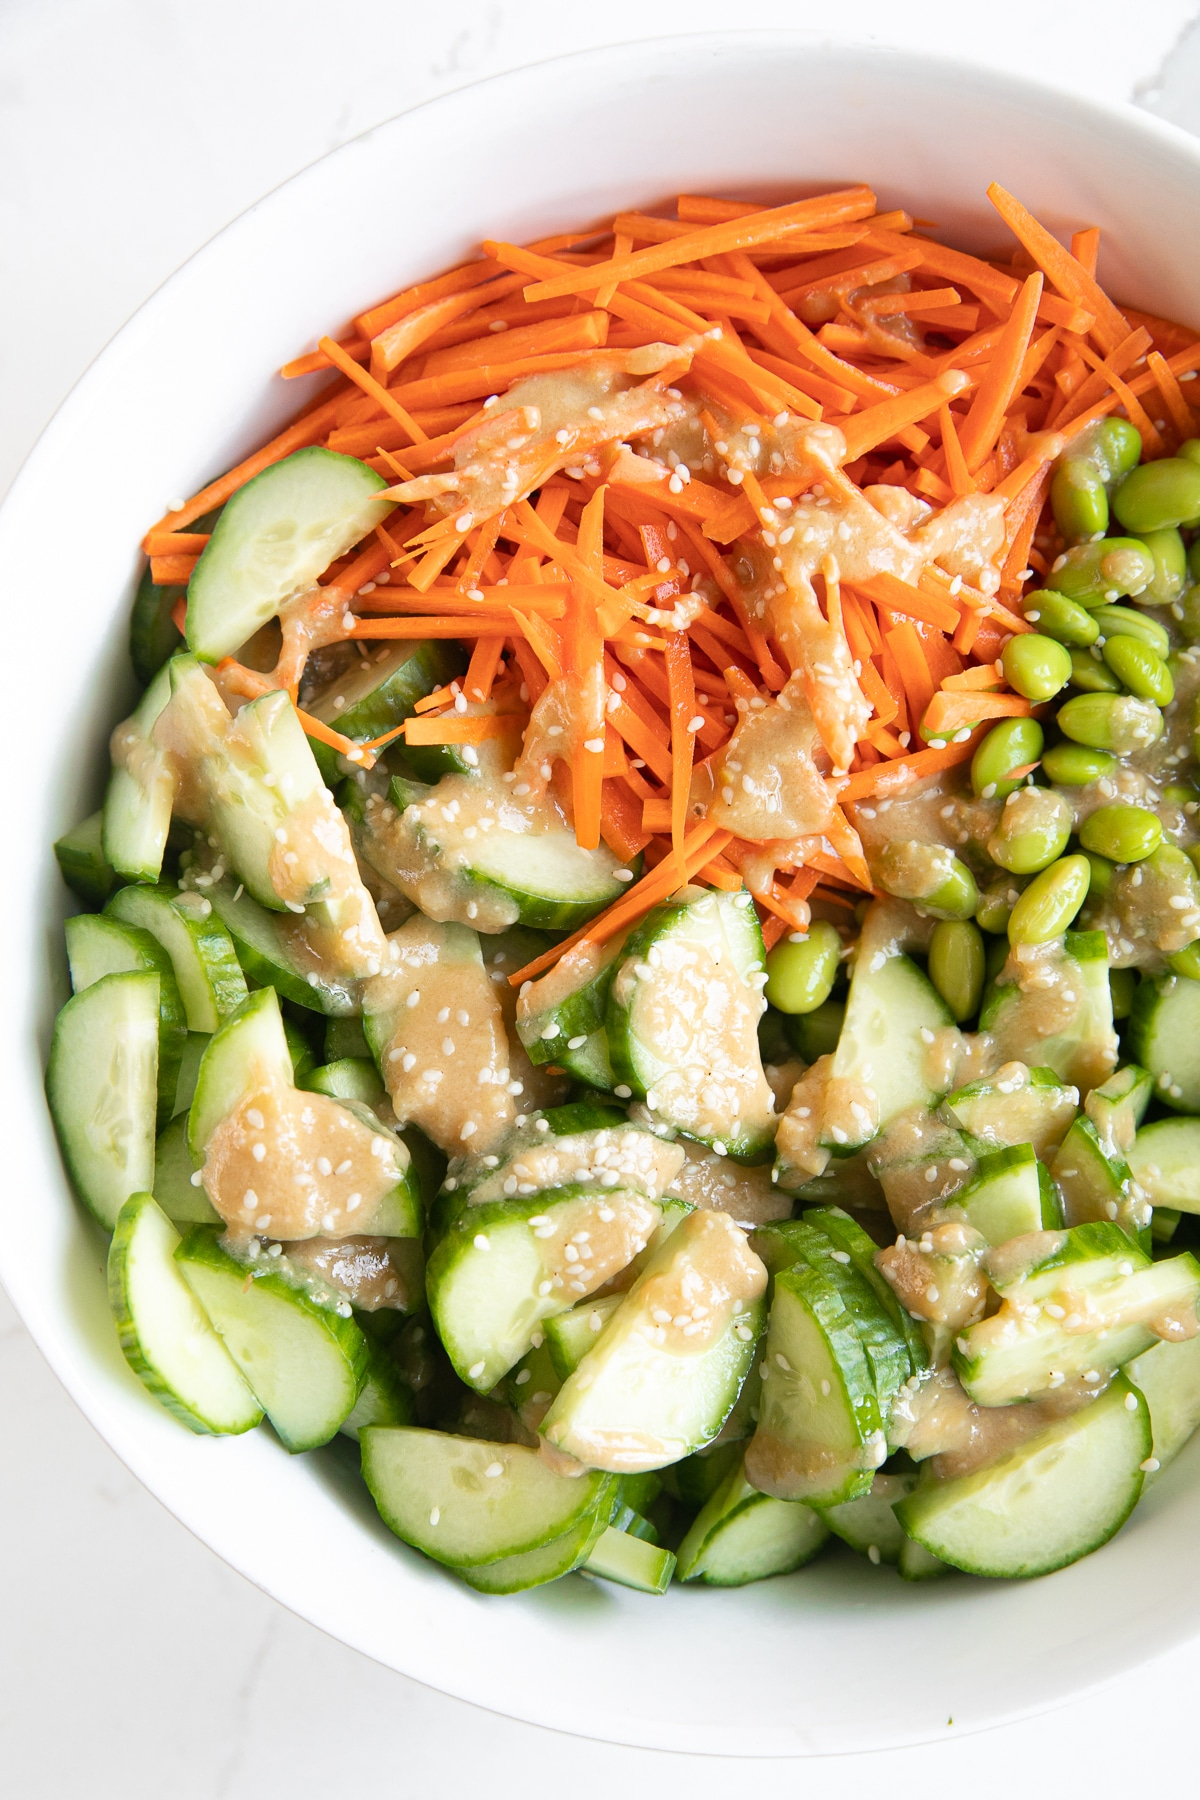 Large white salad bowl filled with julienned carrots, sliced cucumbers, and edamame and drizzled with homemade miso dressing.